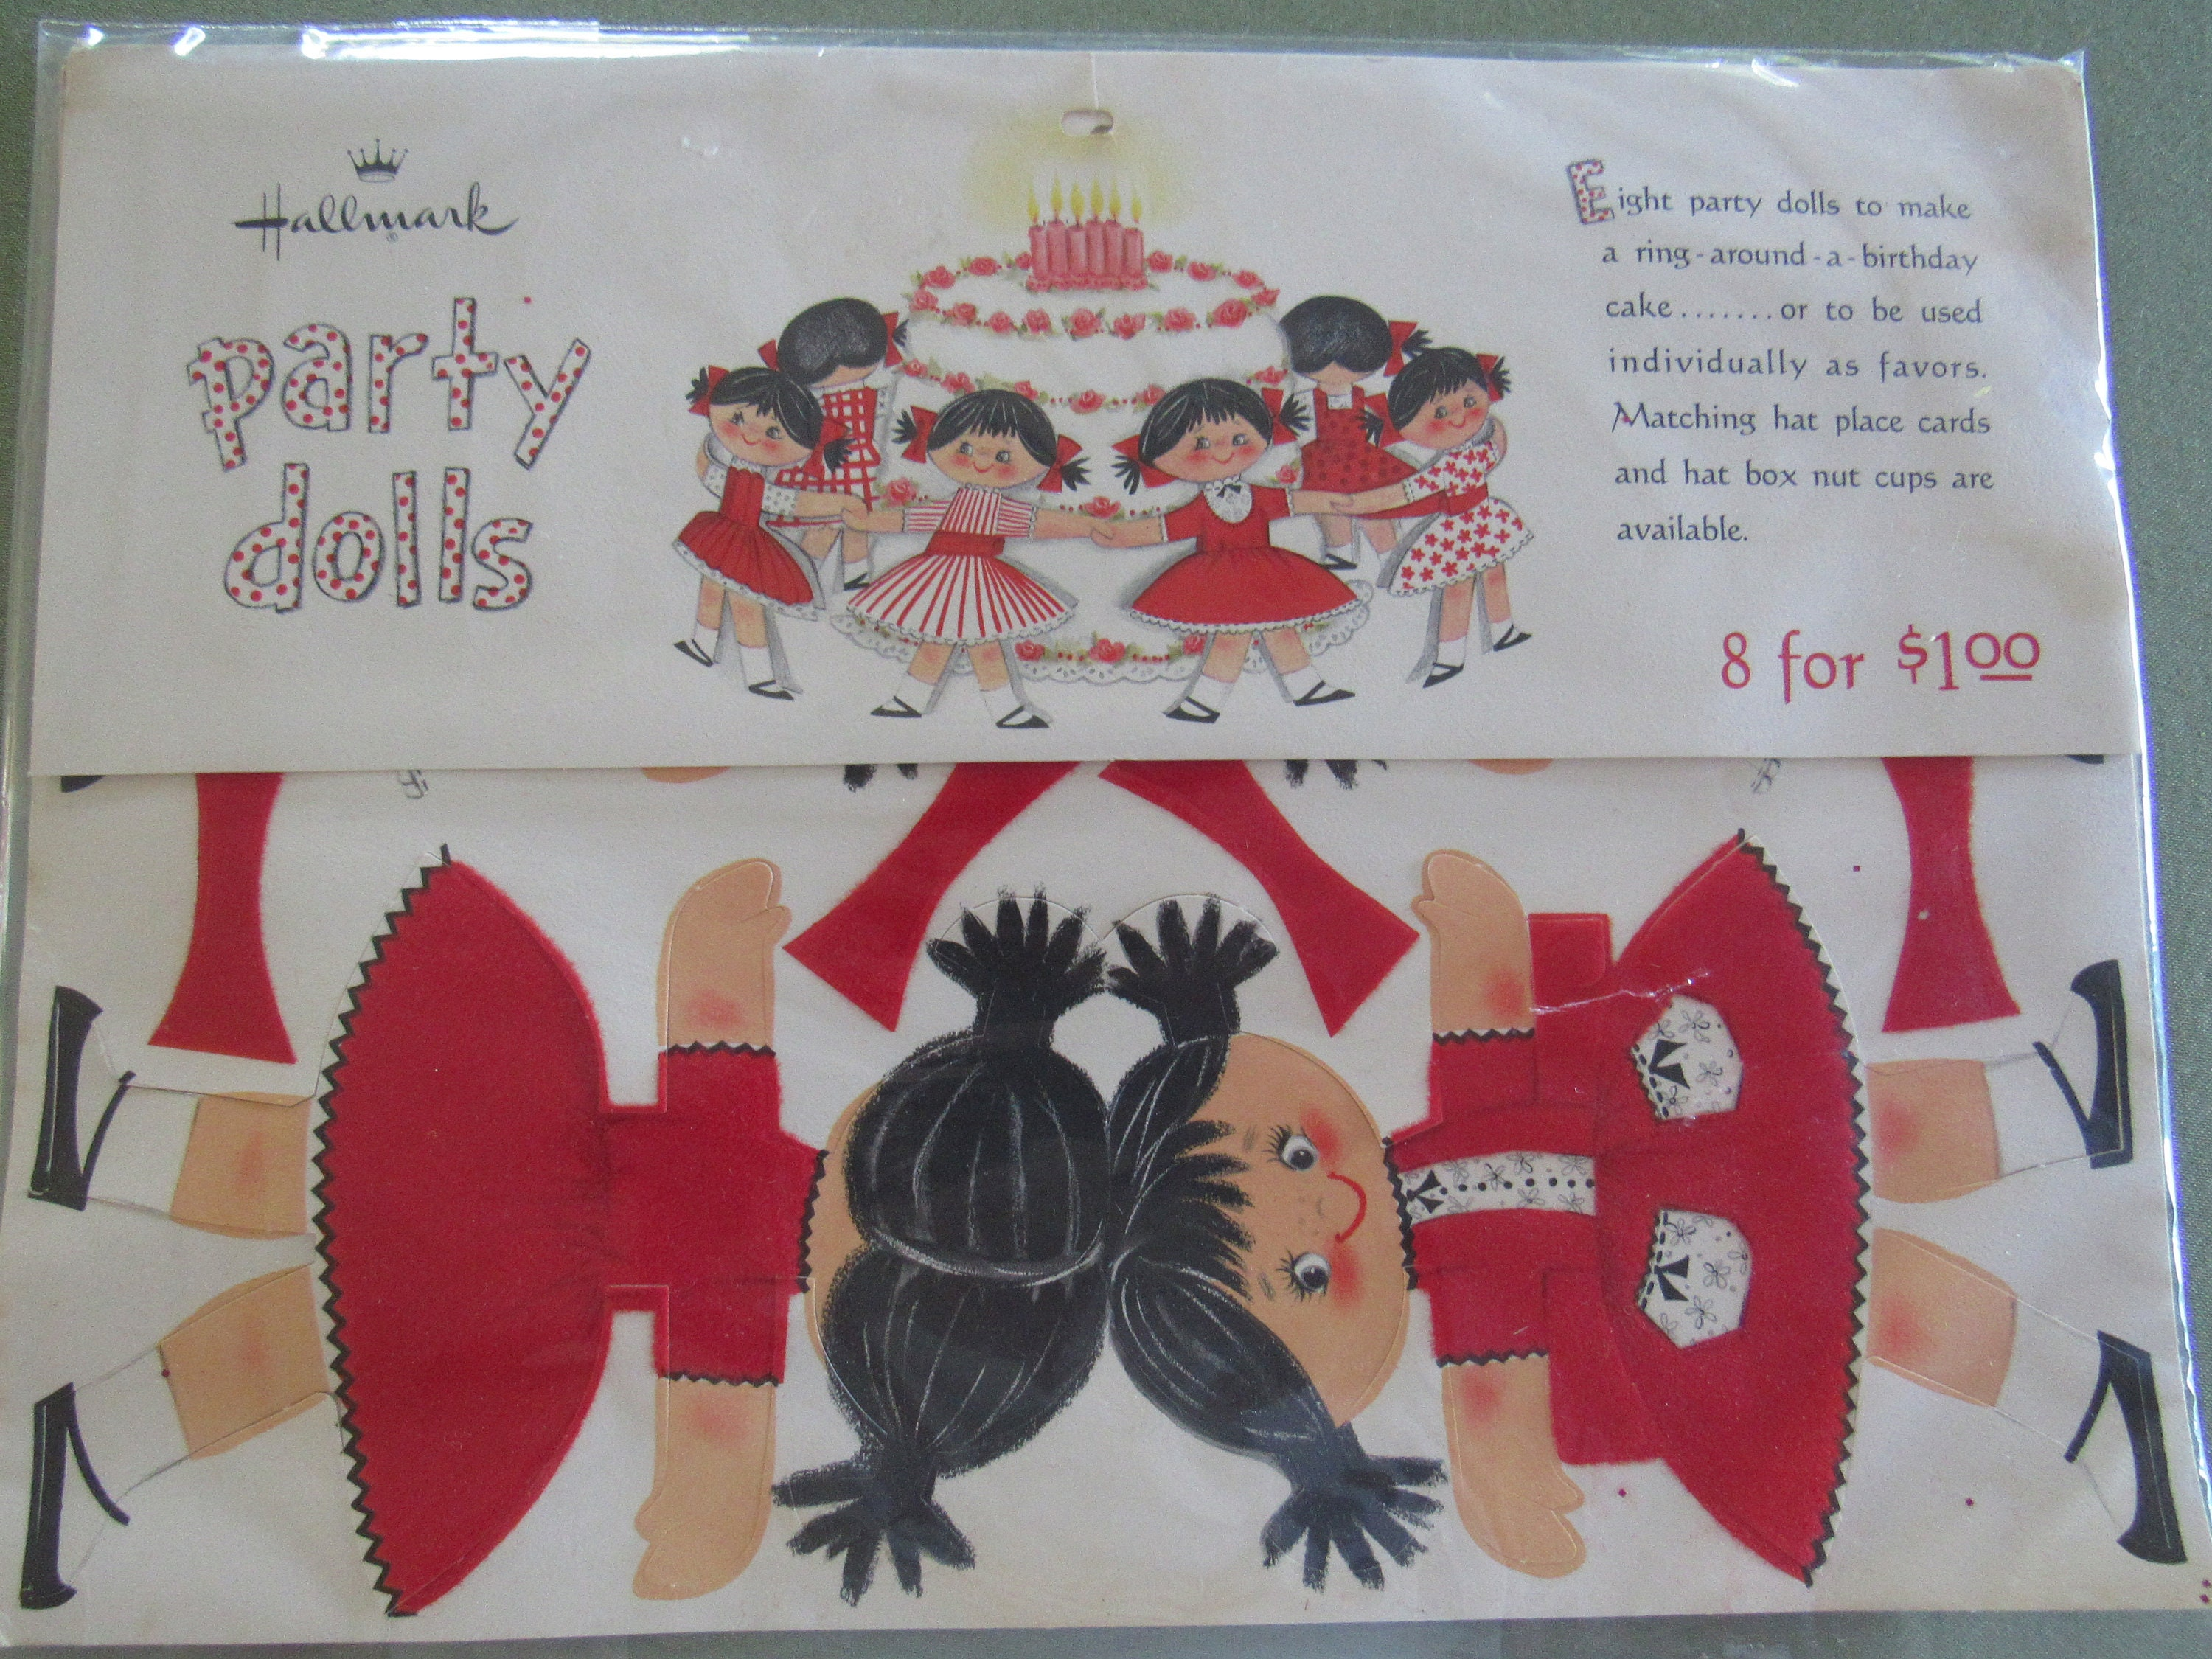 Hallmark PARTY DOLLS Vintage 1960s Ring Around A Birthday Cake